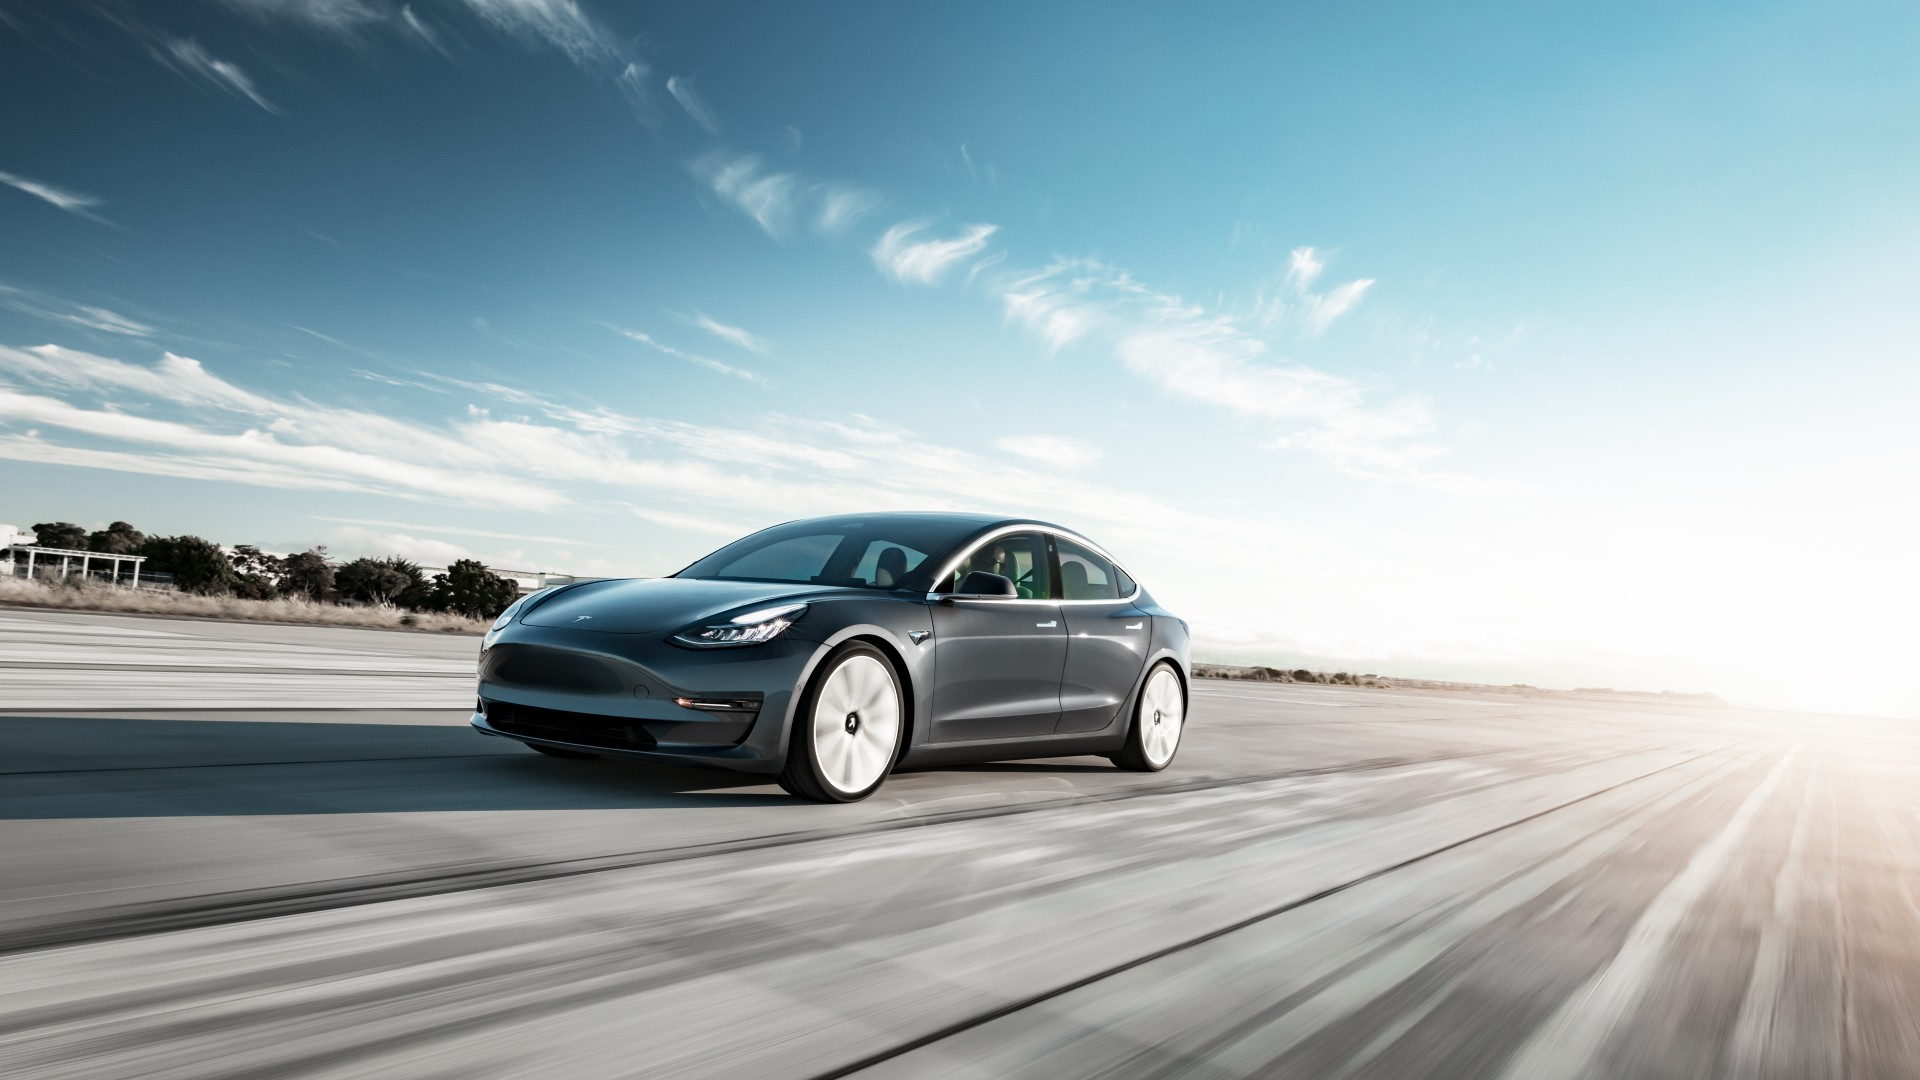 Tesla Model 3 price cut another $1,100, for base price of